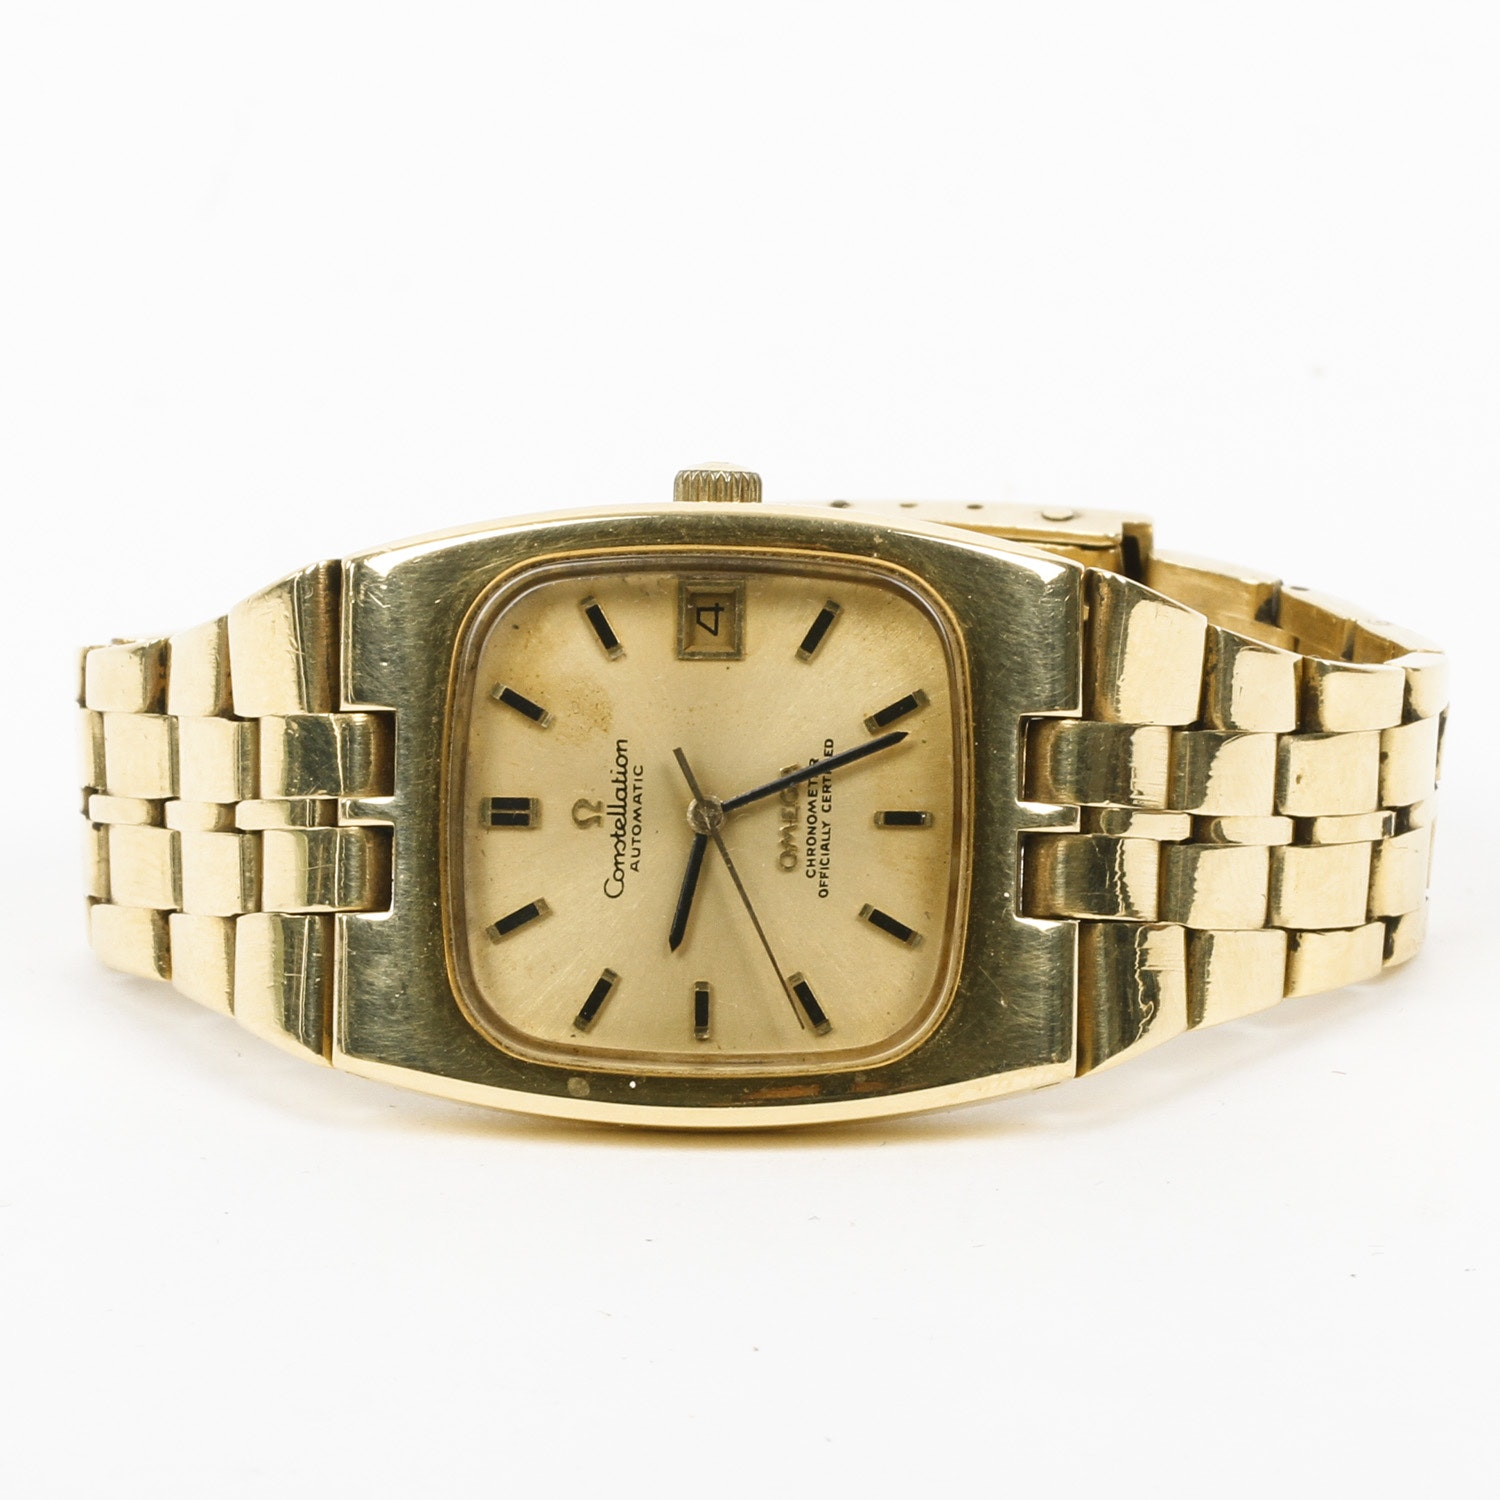 18K Yellow Gold Omega Constellation Watch